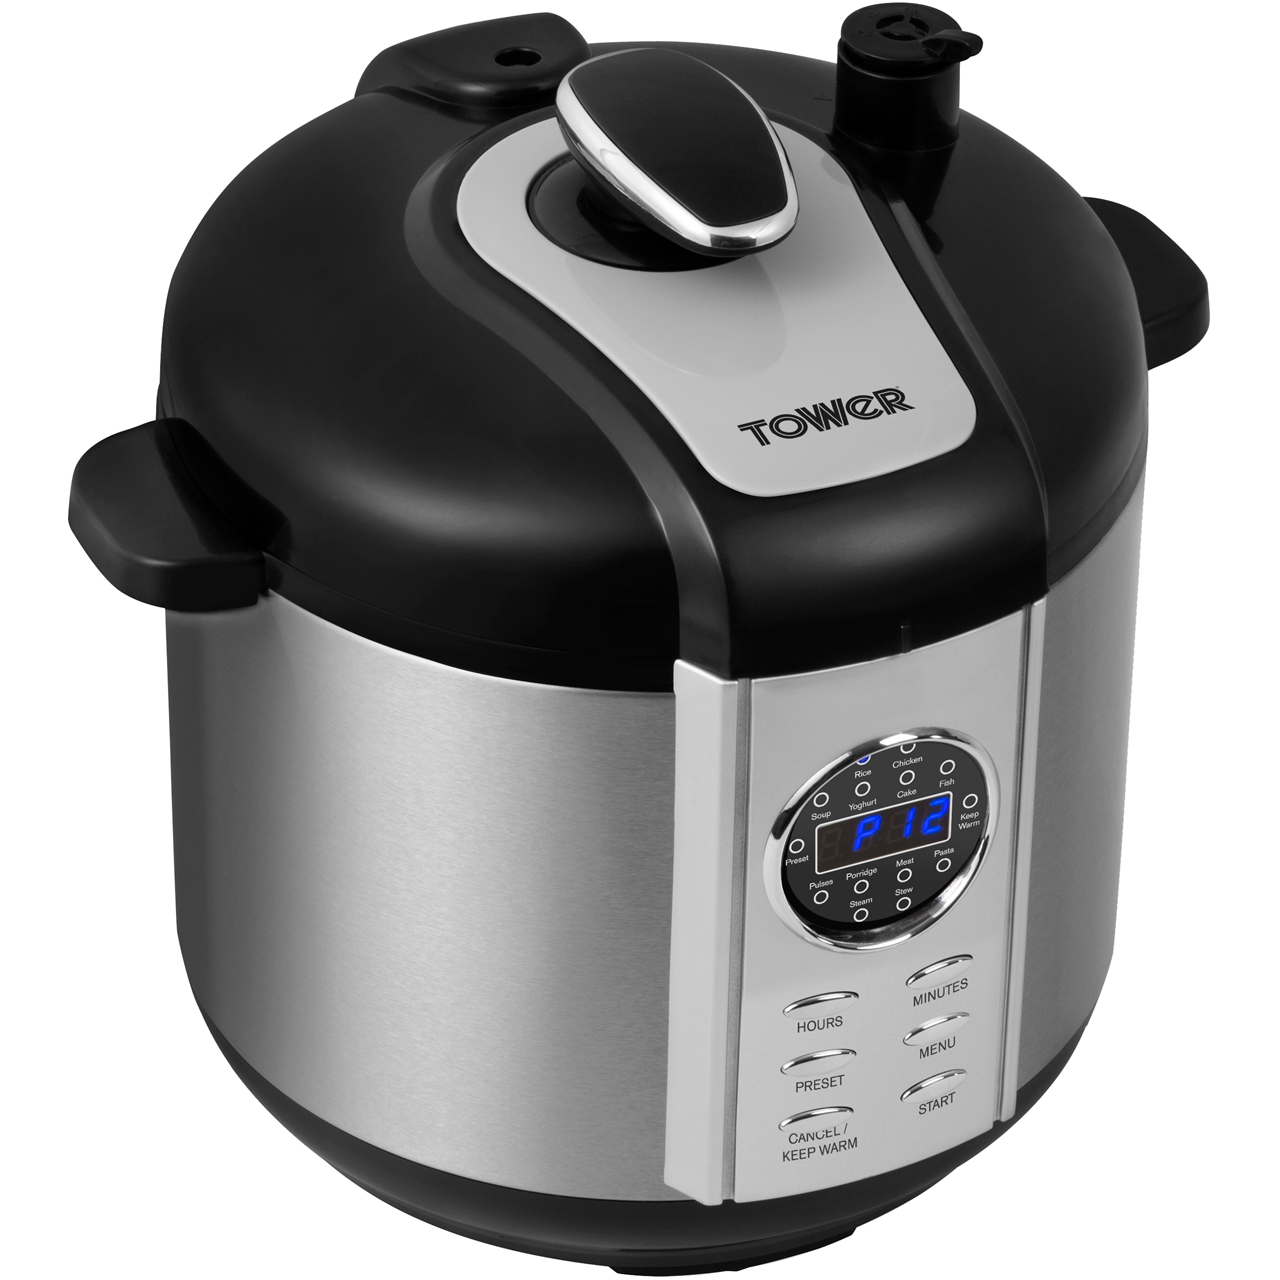 Tower T16005 Pressure Cooker - 1100W - 6 litre